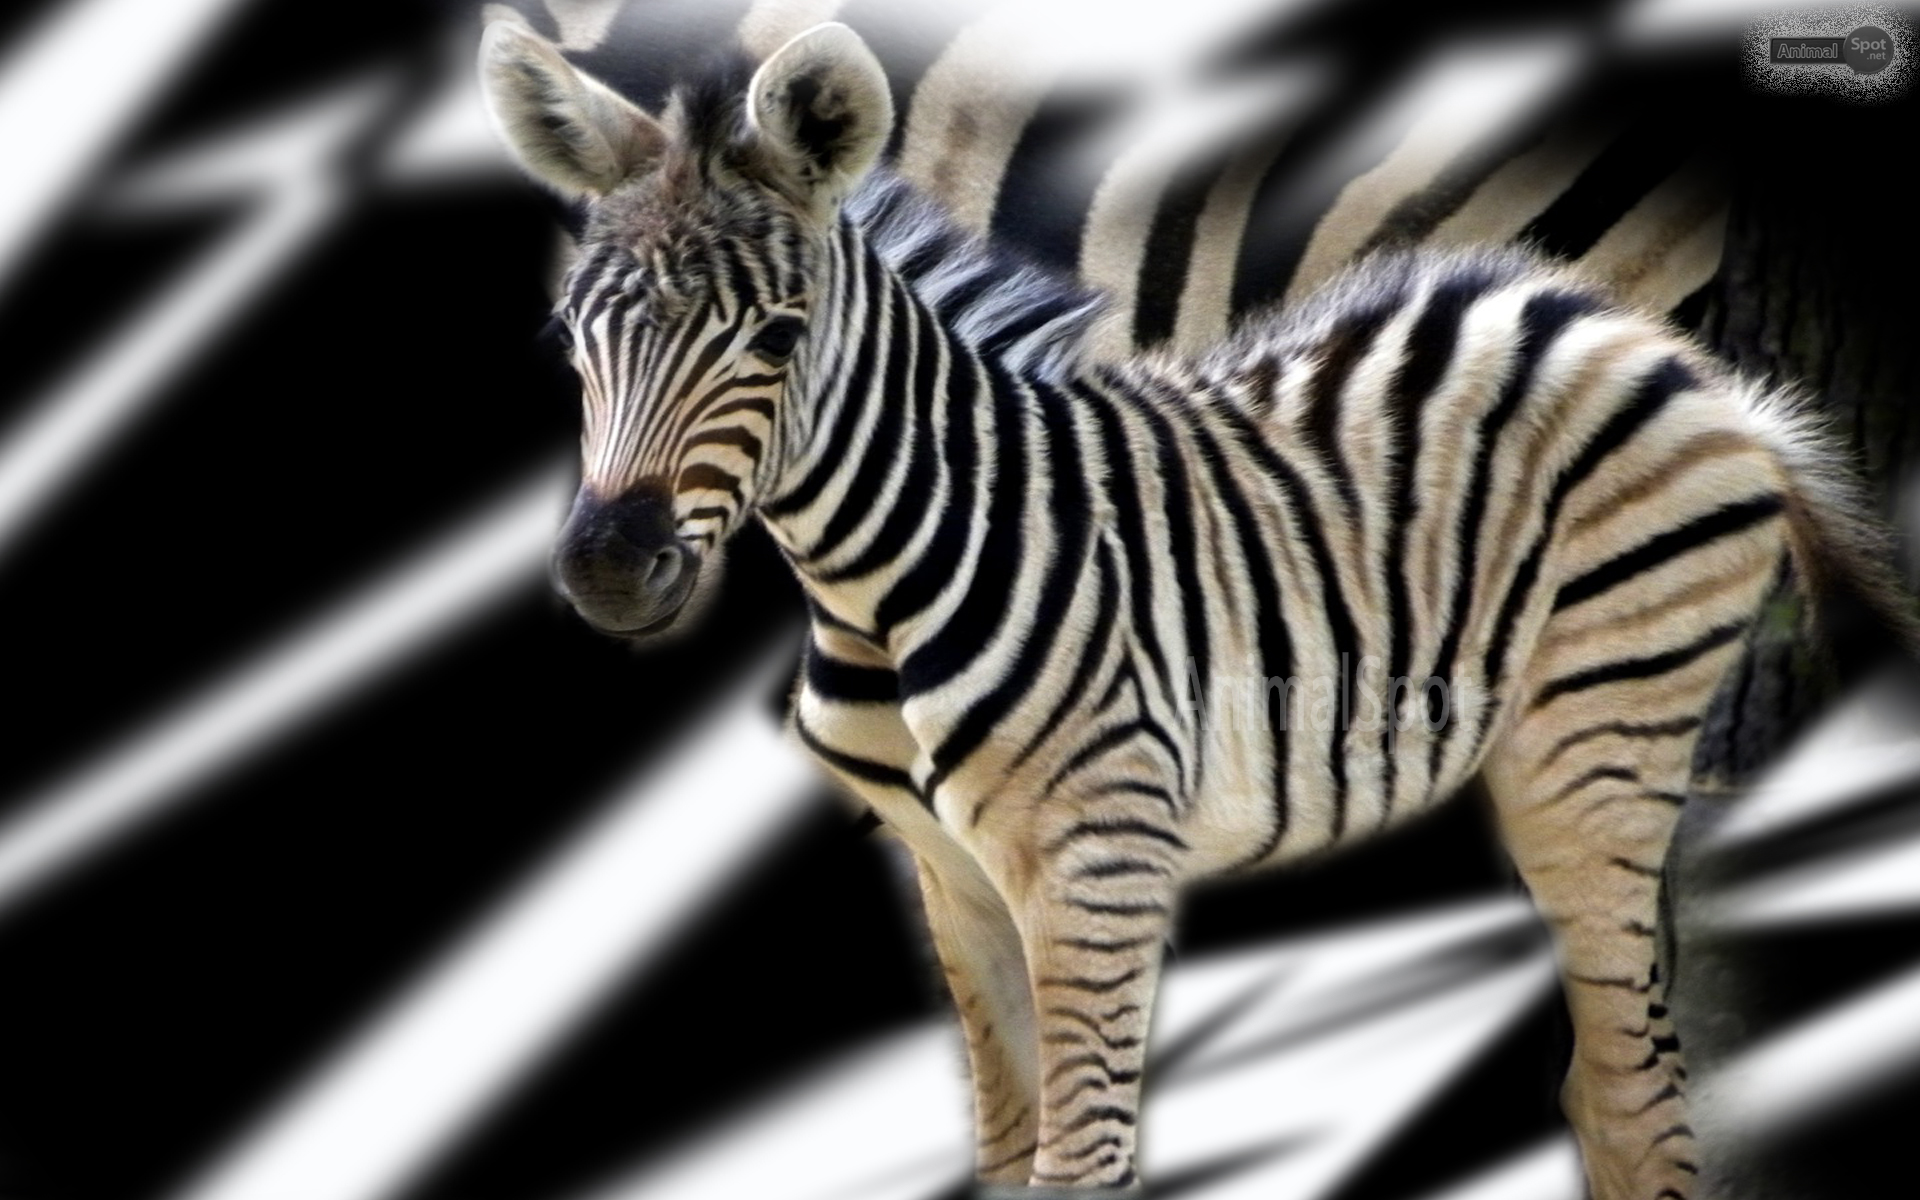 Zebra images wallpapers 42 wallpapers adorable wallpapers for Zebra wallpaper